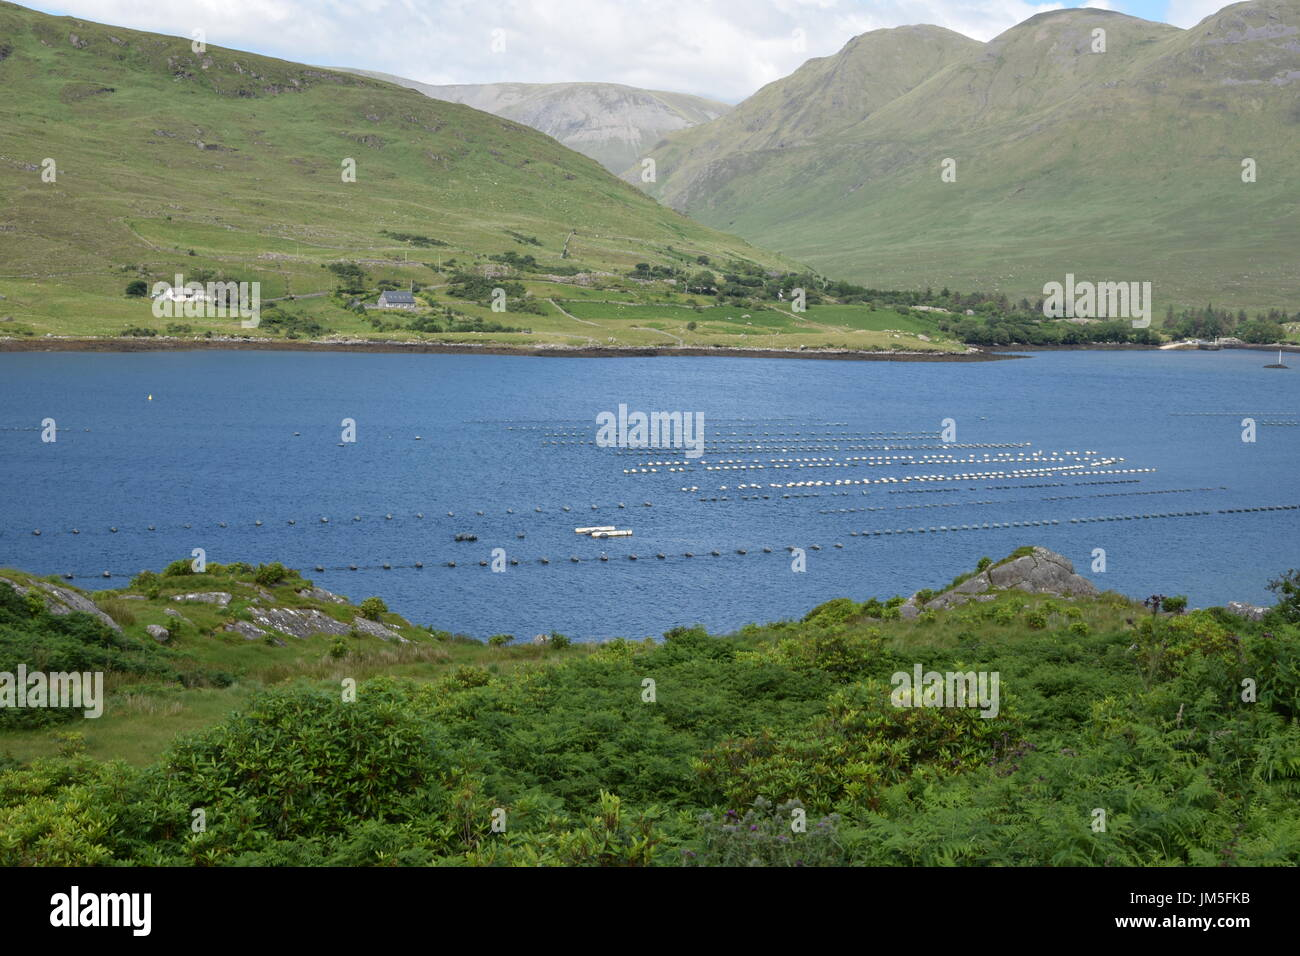 View of Killary Harbour and floats on mussel beds from the road N59 in the County Galway, Ireland - Stock Image